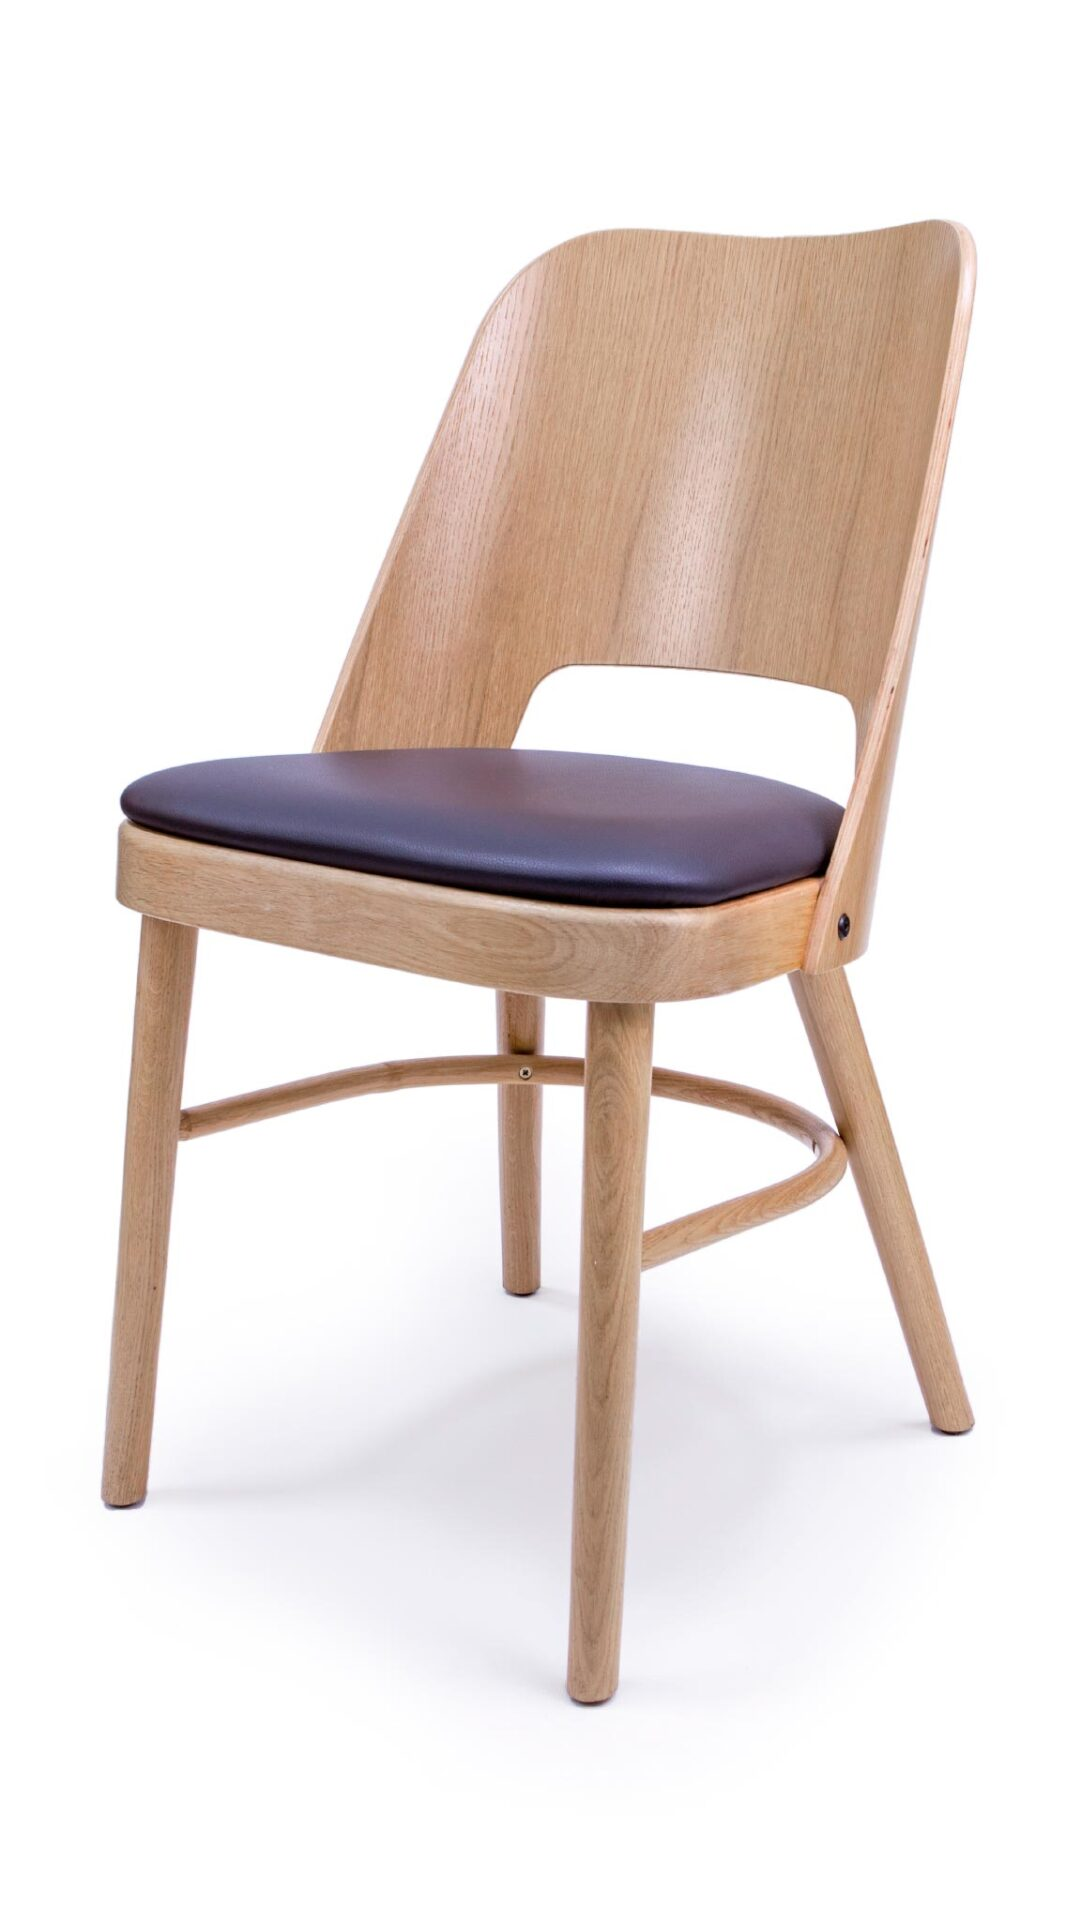 Solid Wood Chair made of Beech - 1334S